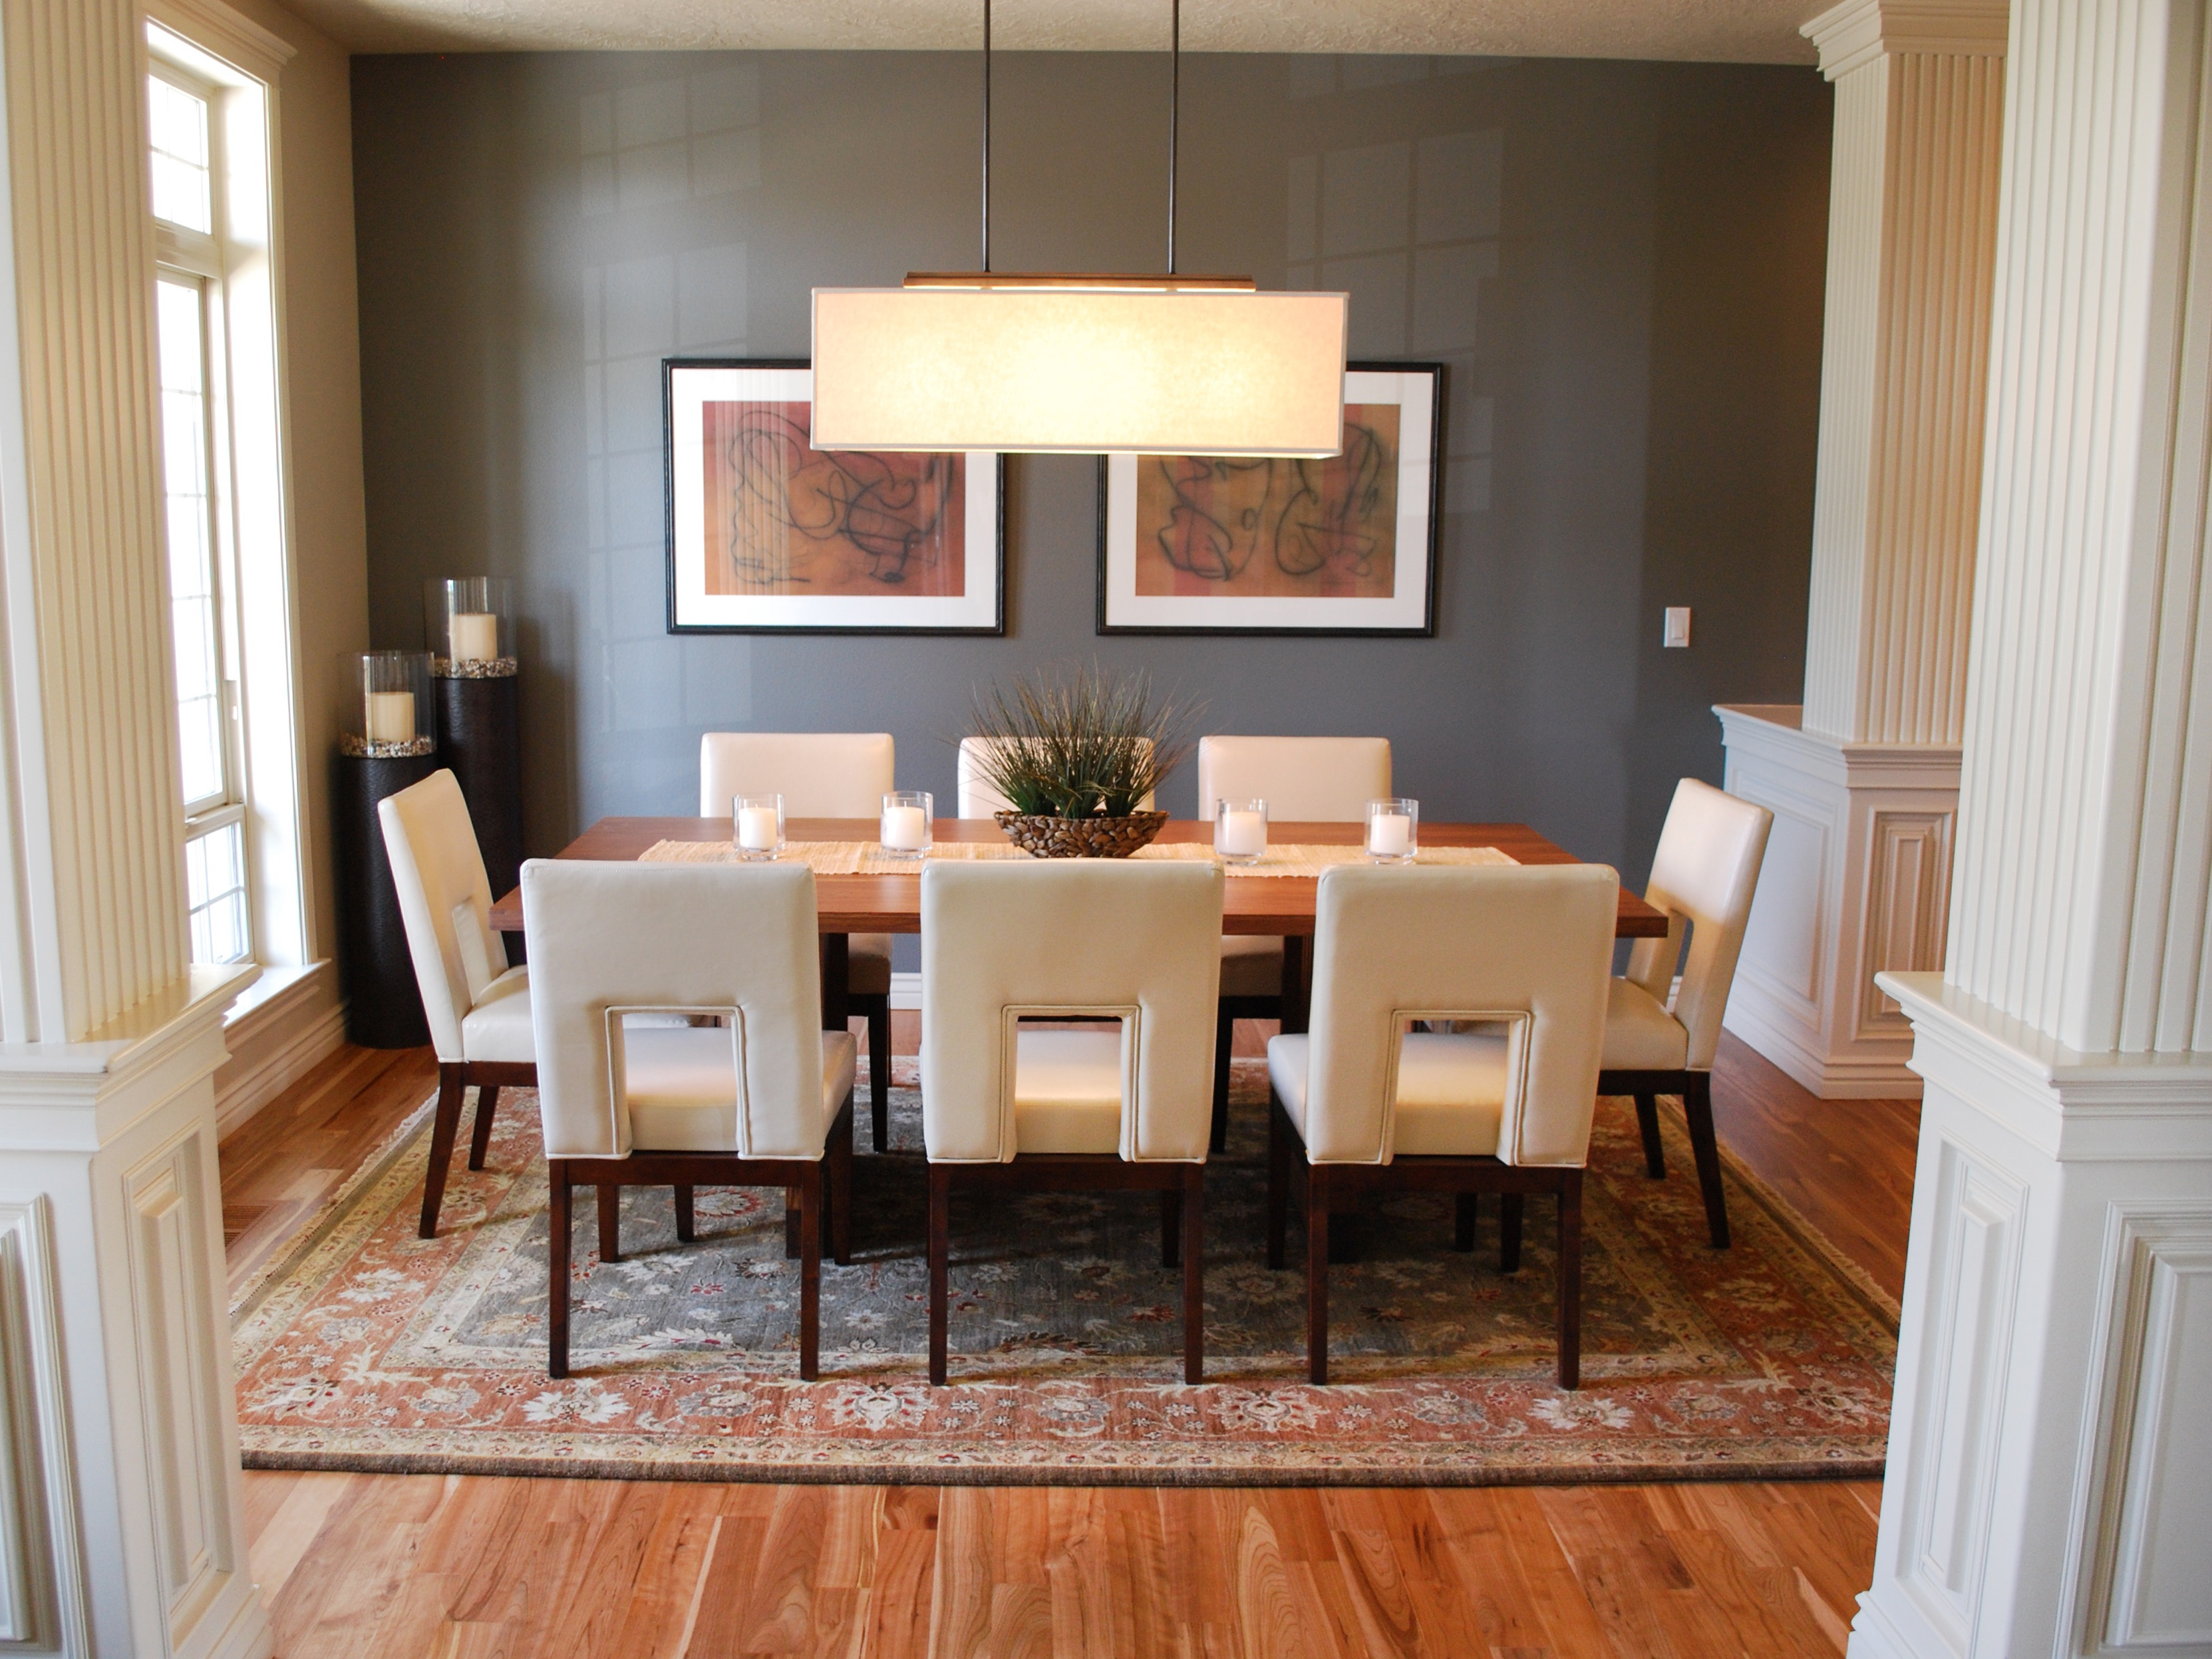 2017 Modern Dining Room With 8 Chairs (Image 1 of 25)